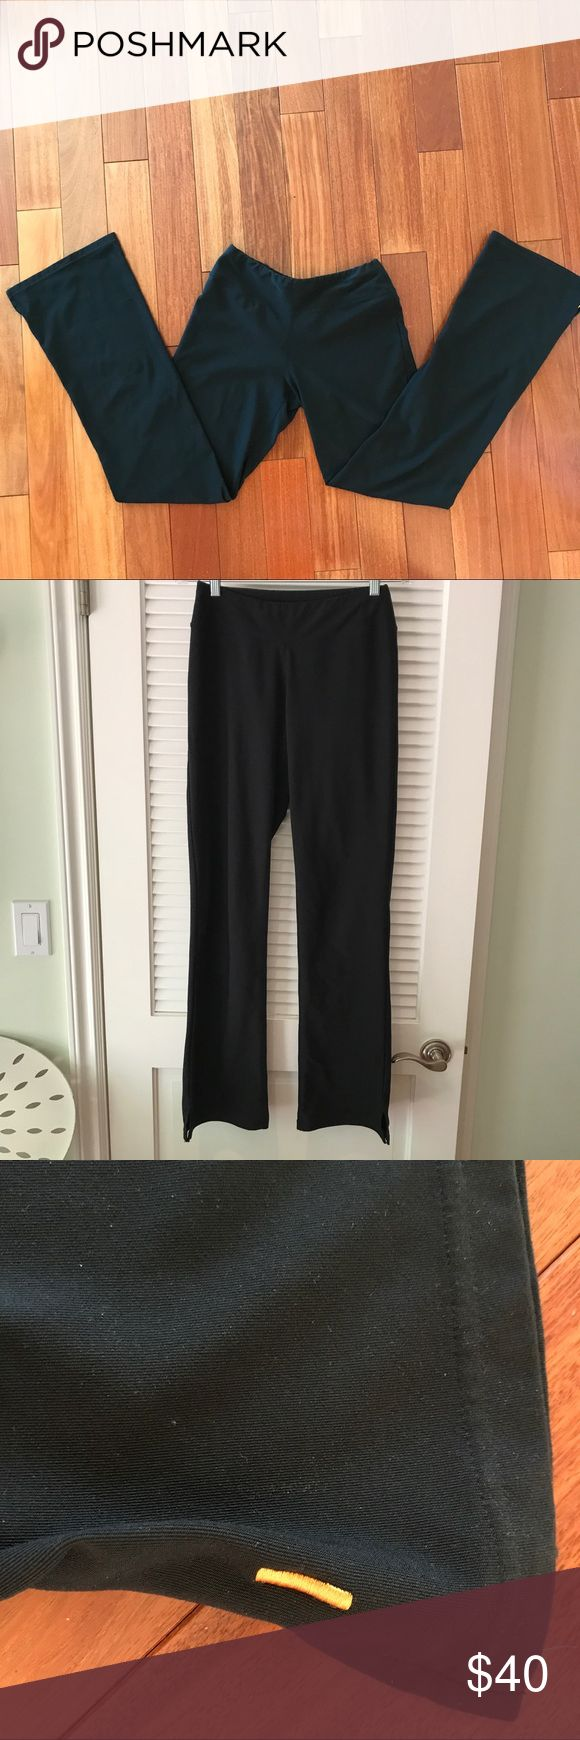 """Lucy Yoga Pants in Black Super comfortable and stretchy yoga pants that hug the thighs and sit loosely below the knees. This is in a tall size so it hits me perfectly and I'm 5'8"""". Material can be seen in the pictures above. Approx Dimensions are as follows -- Waist: 26"""" (unstretched) 34"""" (stretched) -- Inseam: 32"""" -- Exterior Length: 41"""" Lucy Pants Wide Leg"""